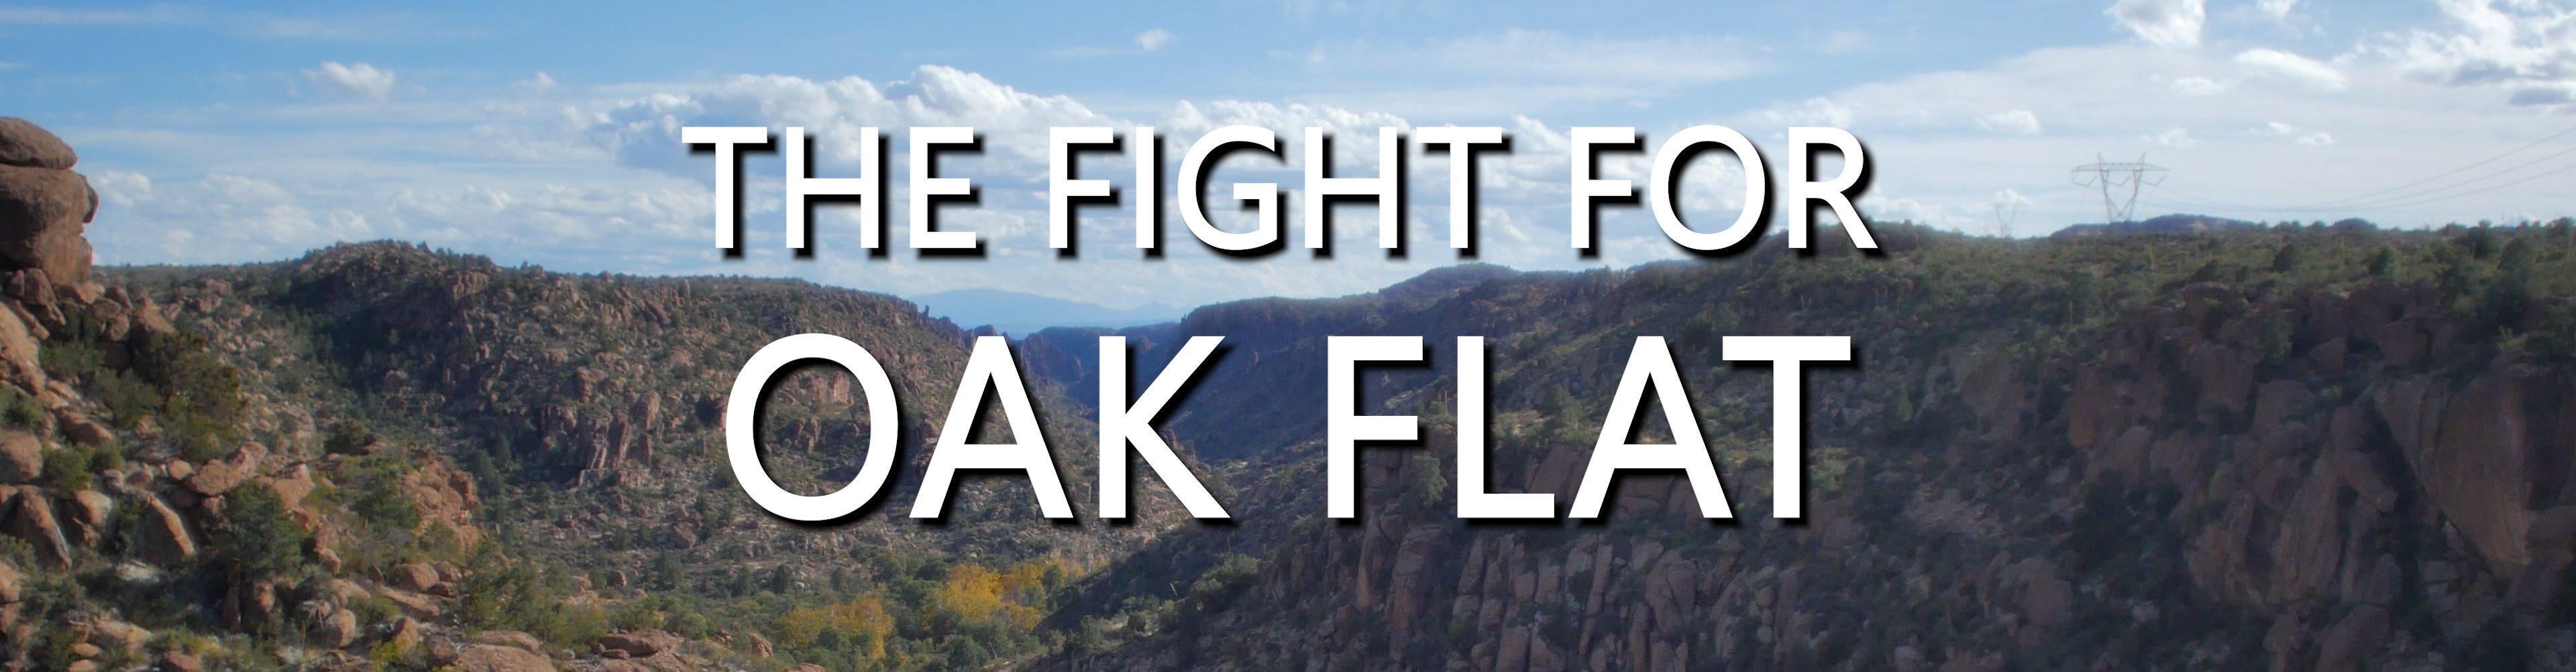 The Fight For Oak Flat